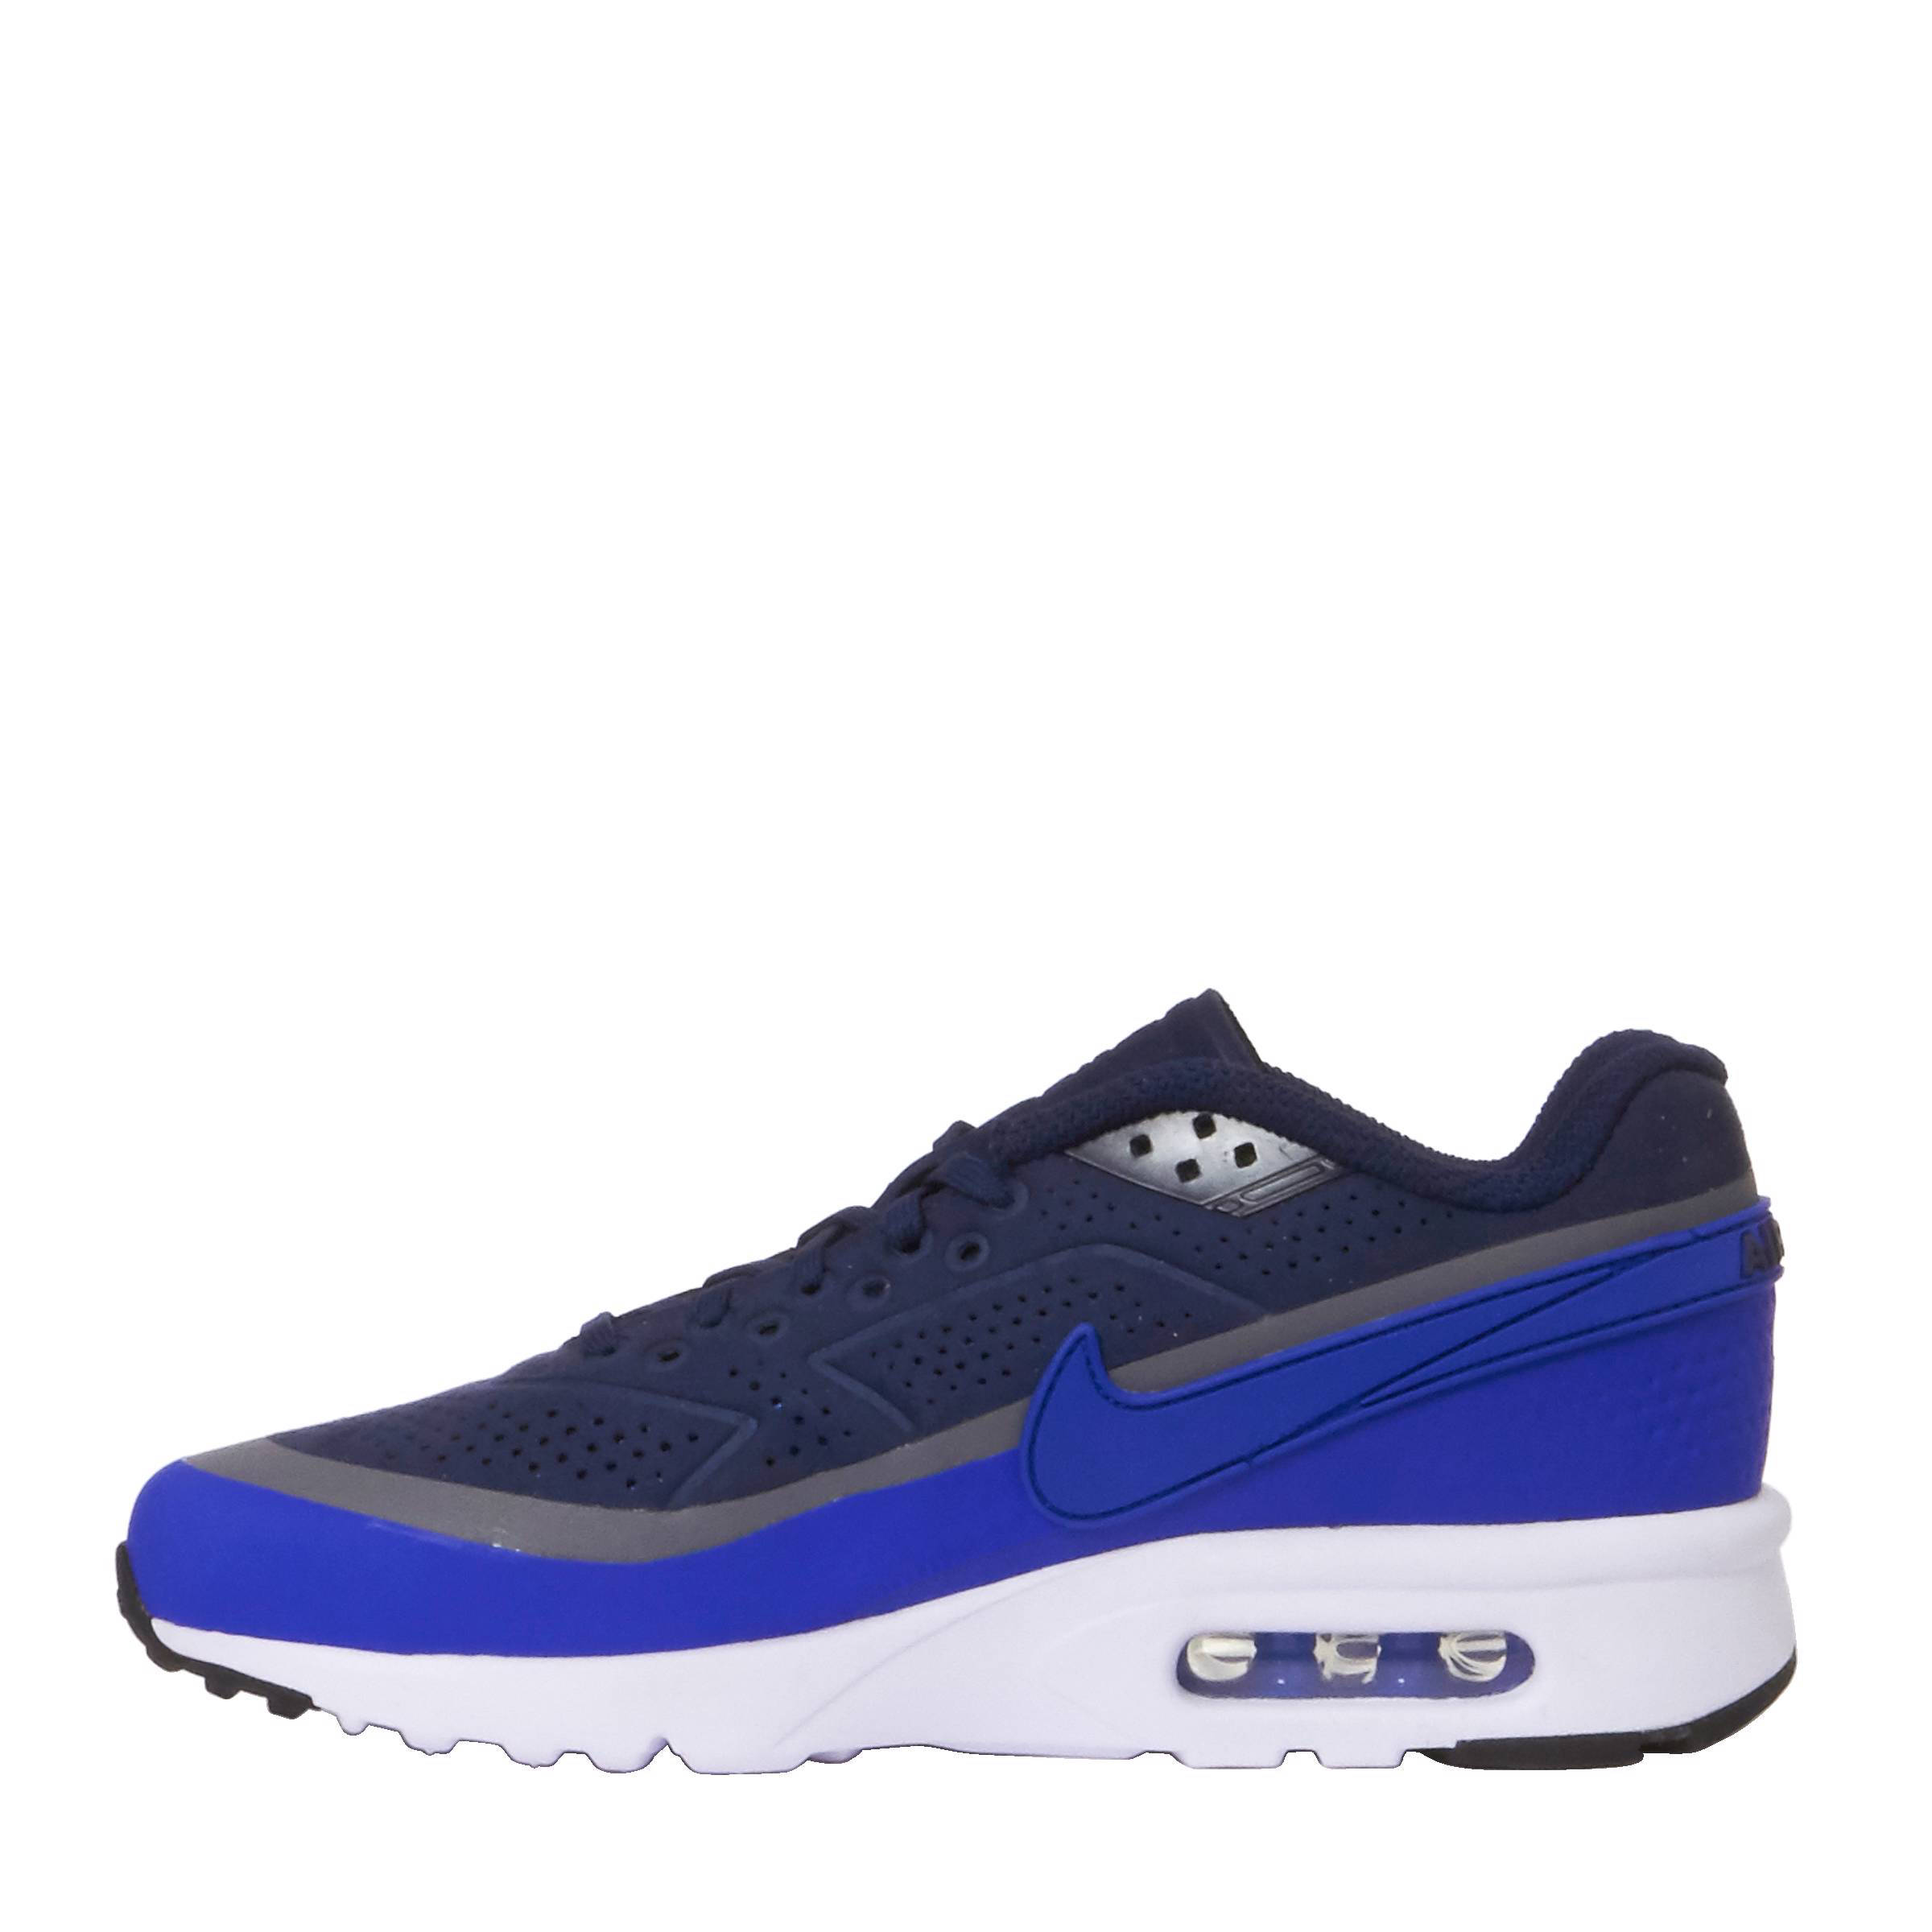 separation shoes 369d0 05366 Nike Air Max BW Ultra Moire sneakers  wehkamp